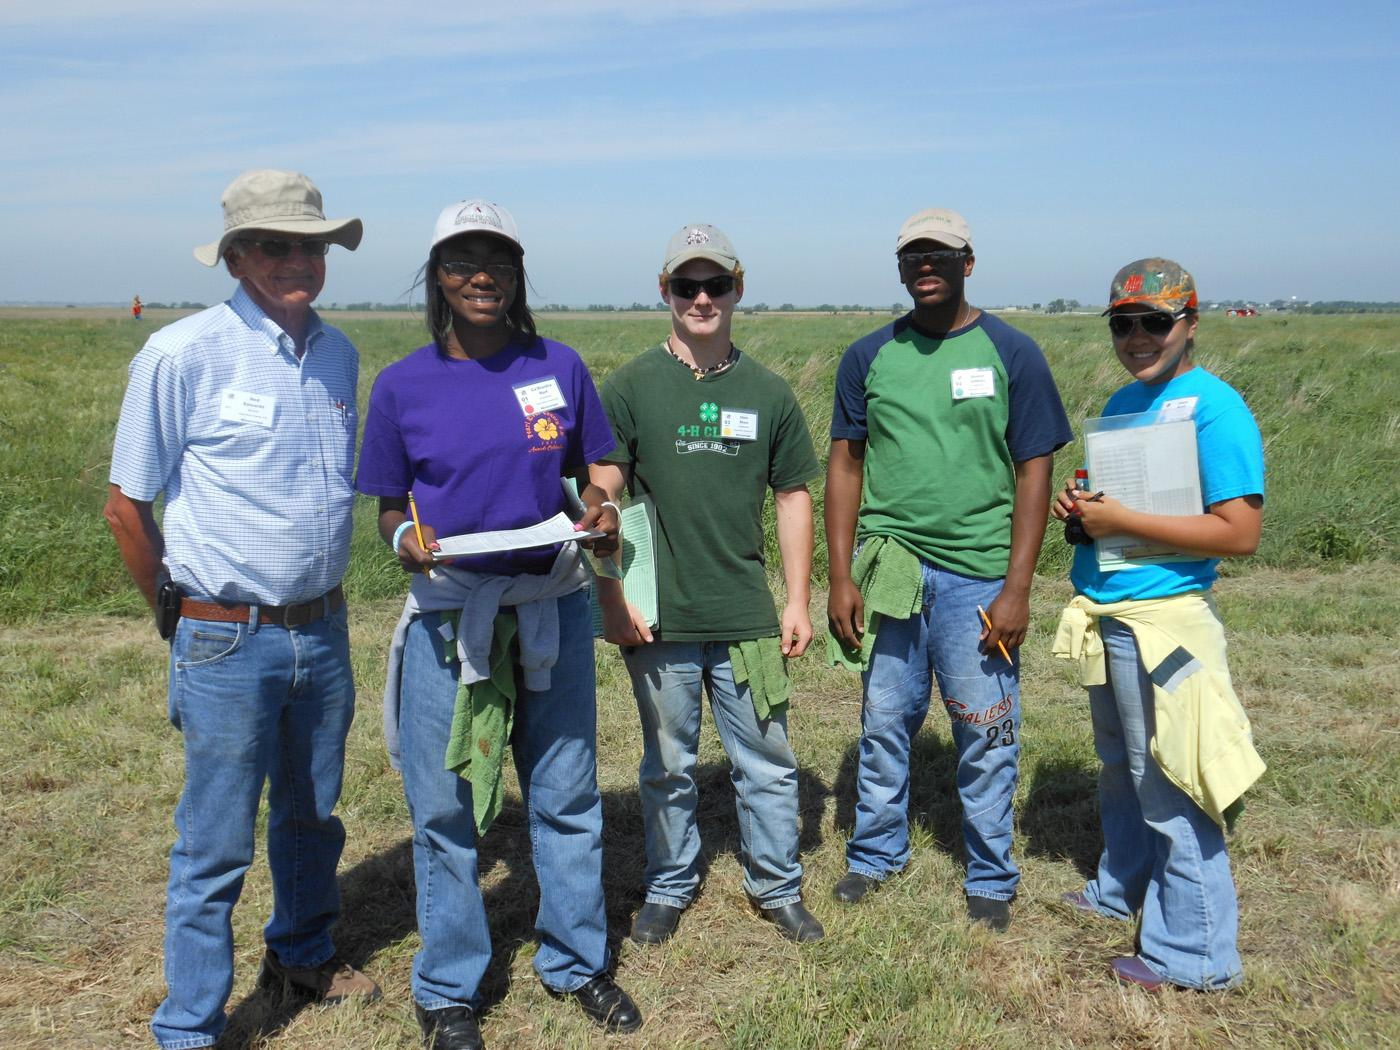 The state champion Pearl River County 4-H land judging team took sixth place in homesite evaluation and fifteenth in land judging at the National Land and Range Judging contest near Oklahoma City, Okla. From left: team coach Ned Edwards, Ca'Standra Hart, Chris Shaw, Donnie Lindsey and Laura Knoll. (Submitted Photo)